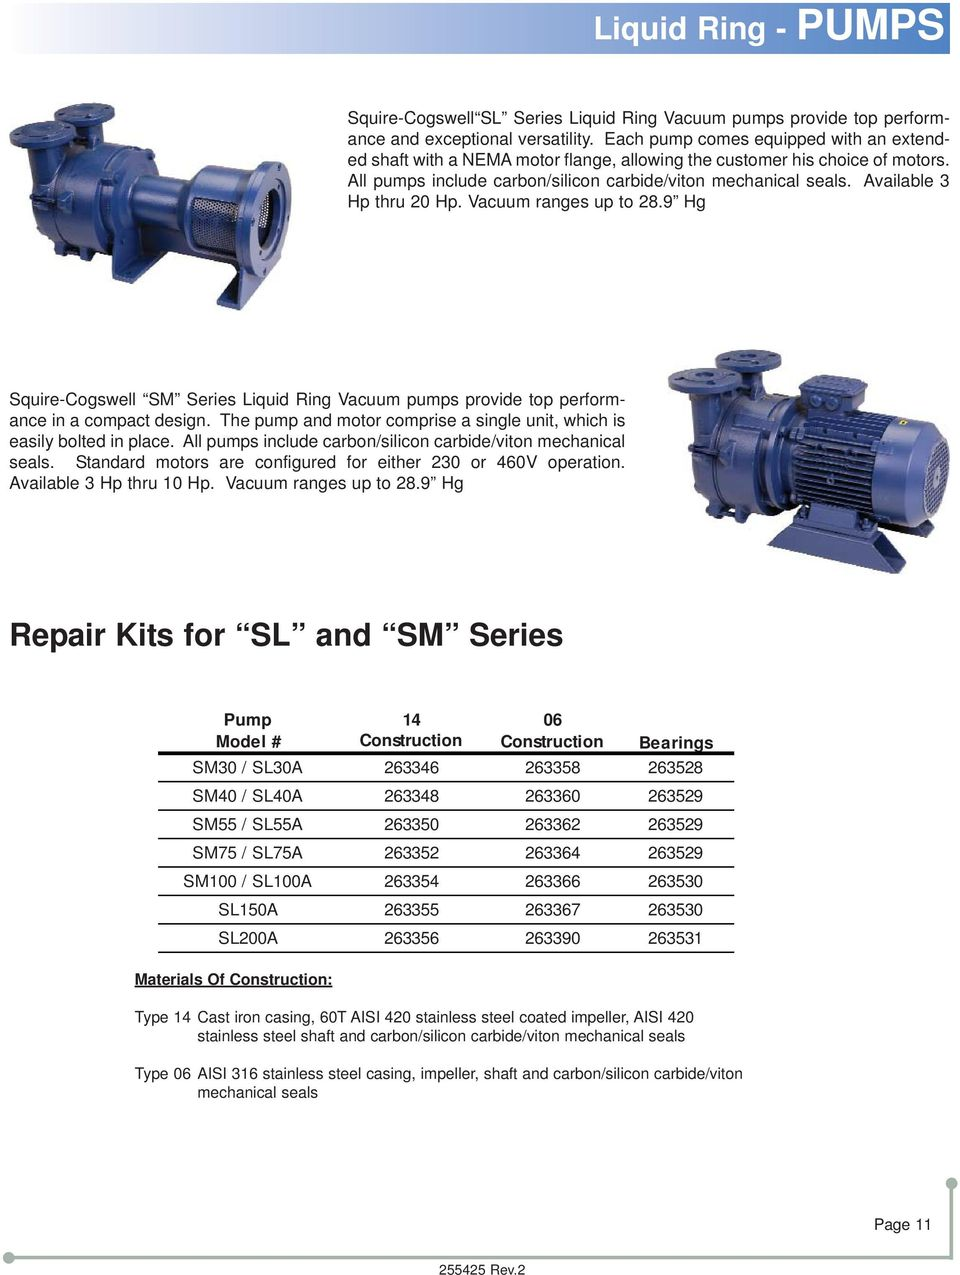 System Troubleshooting Guide Vacuum Pumps Accessories Air Gast Oilless Pump Wire Diagram Available 3 Hp Thru 20 Ranges Up To 289 Hg Squire Cogswell